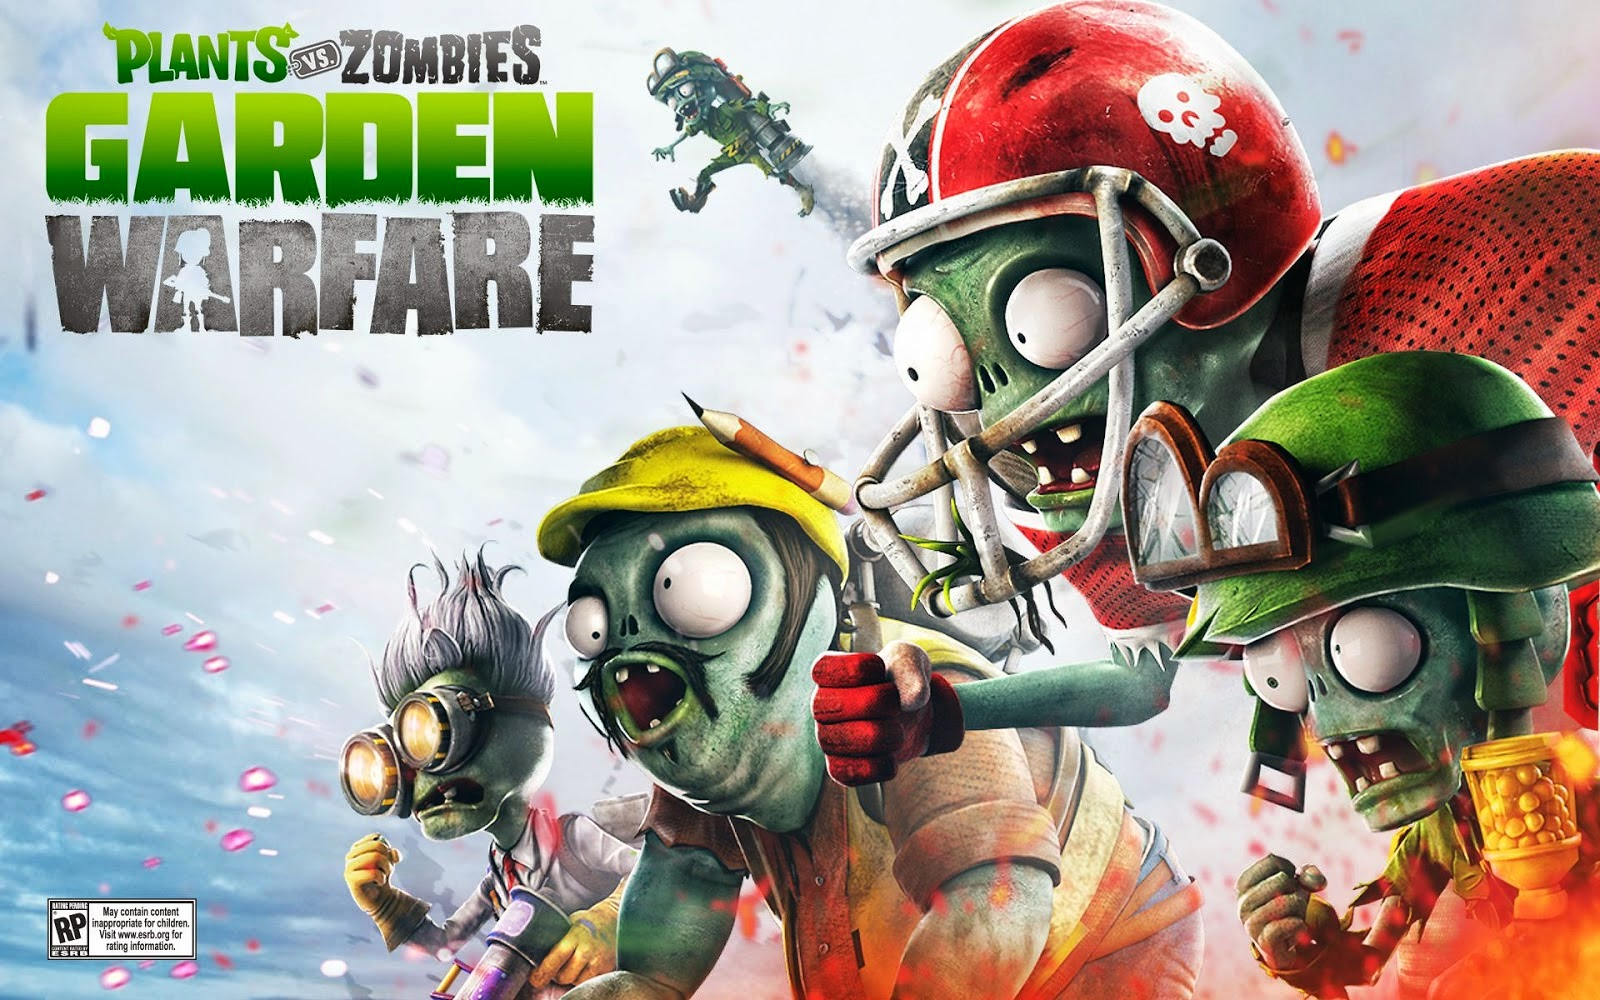 Wallpapersku plants vs zombies garden warfare wallpapers - Free plants vs zombies garden warfare ...